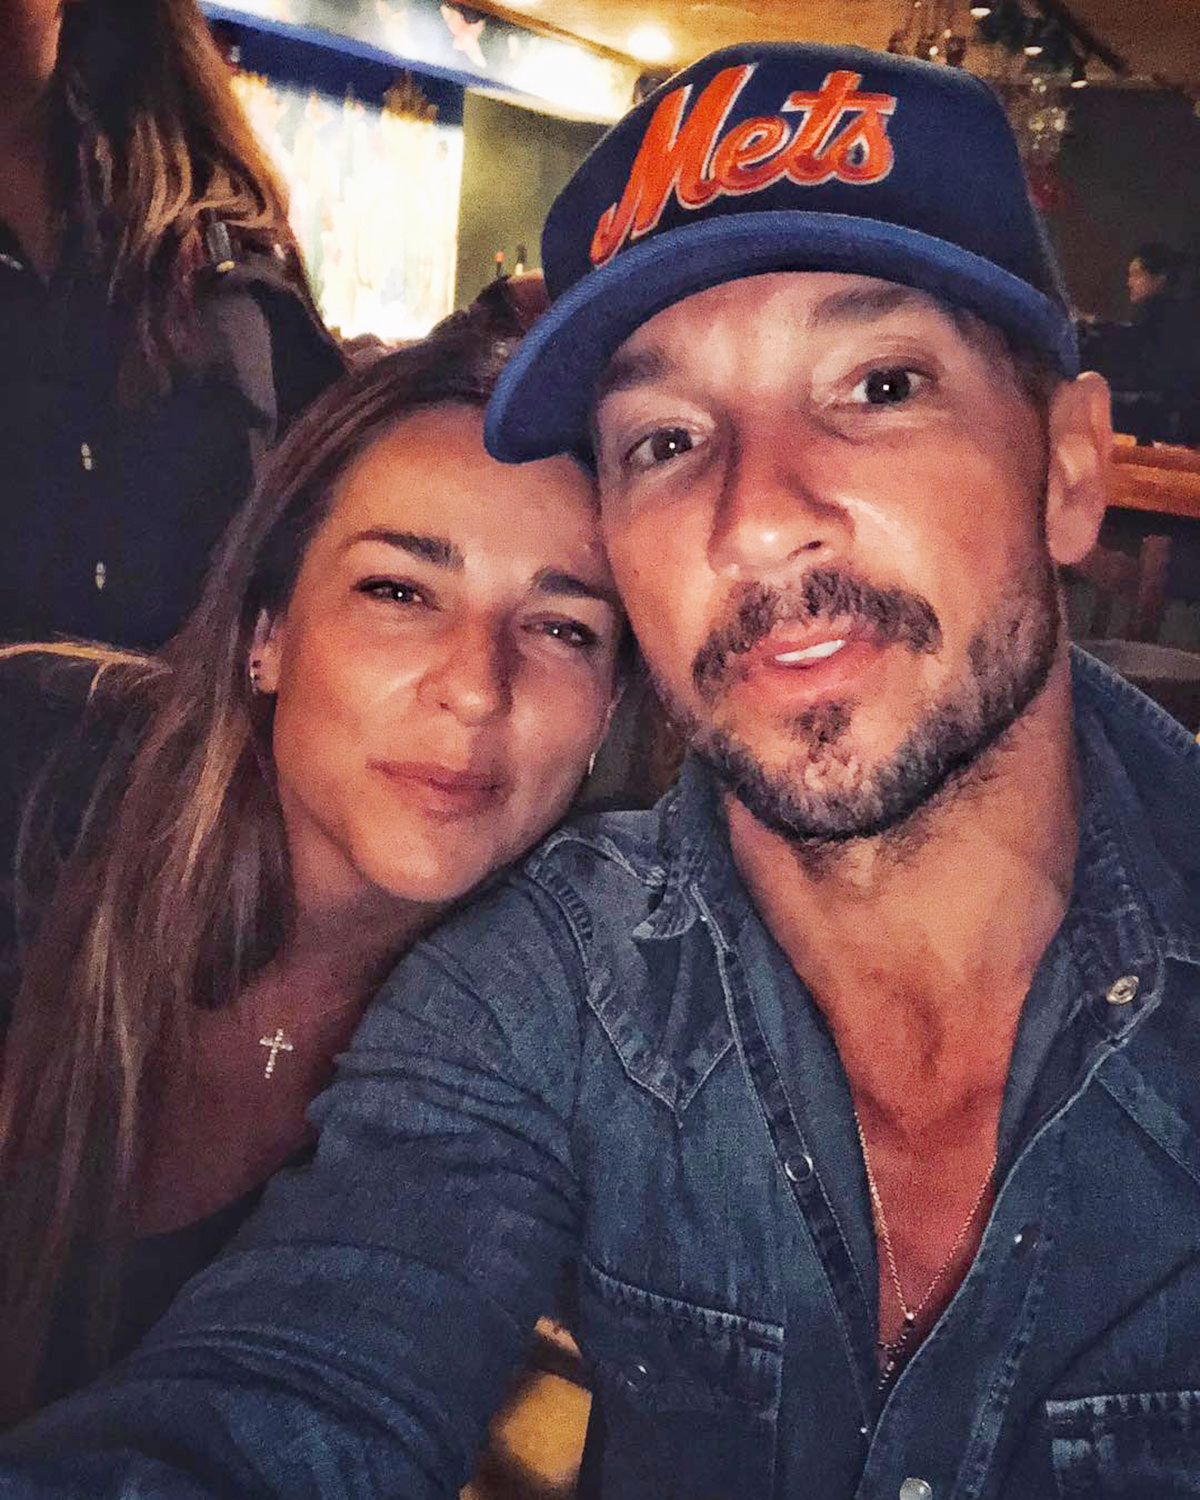 Former Hillsong Pastor Carl Lentz's Wife Laura Lentz Marks Their 18th Wedding Anniversary With First Public Statement Since Husband's Sex Scandal